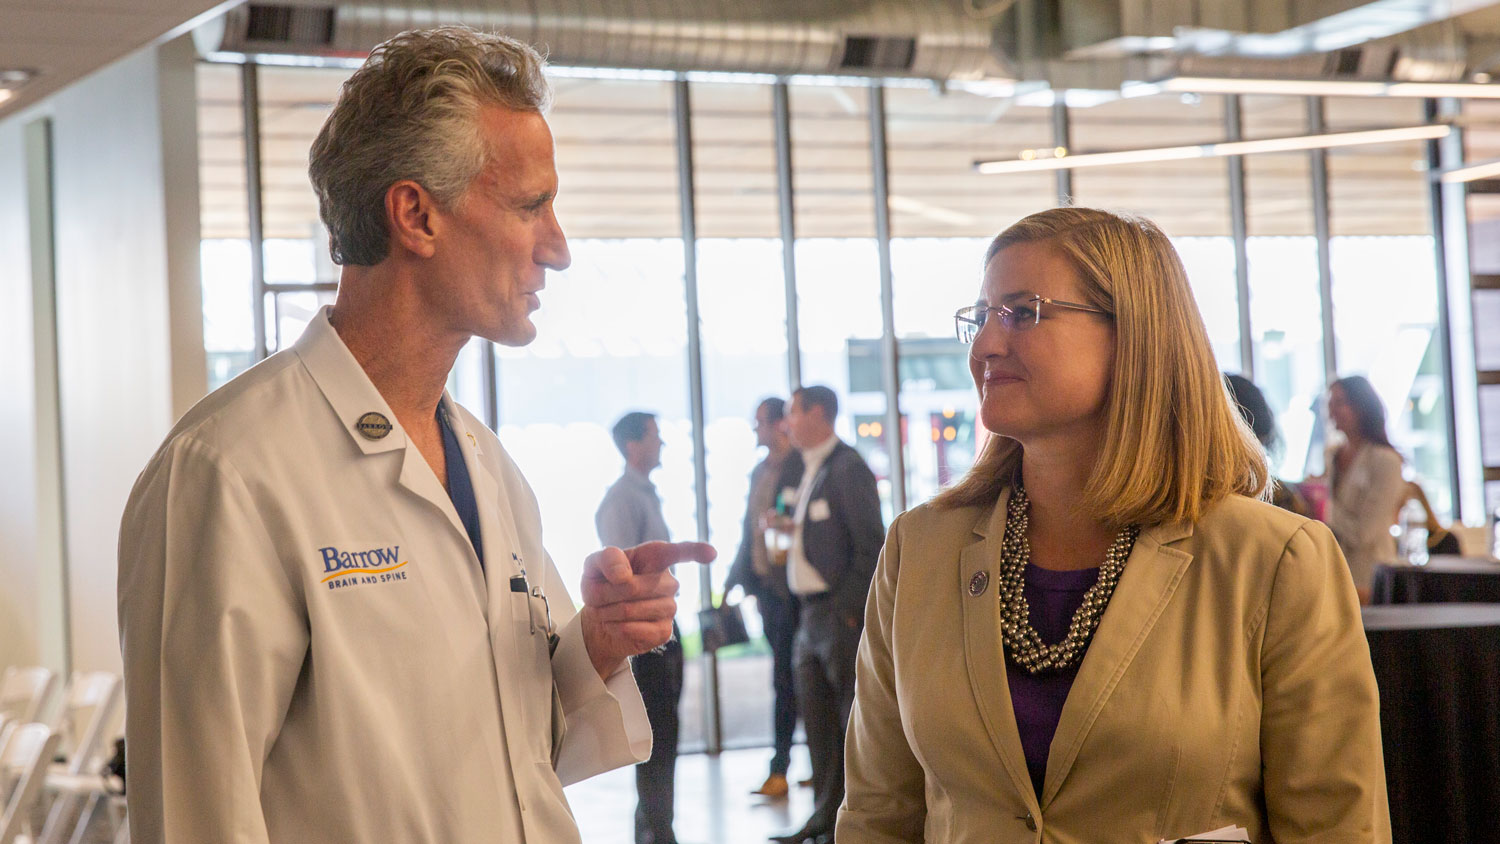 Barrow Neurological Institute President and CEO Michael Lawton (left) and Phoenix Mayor Kate Gallego talk.